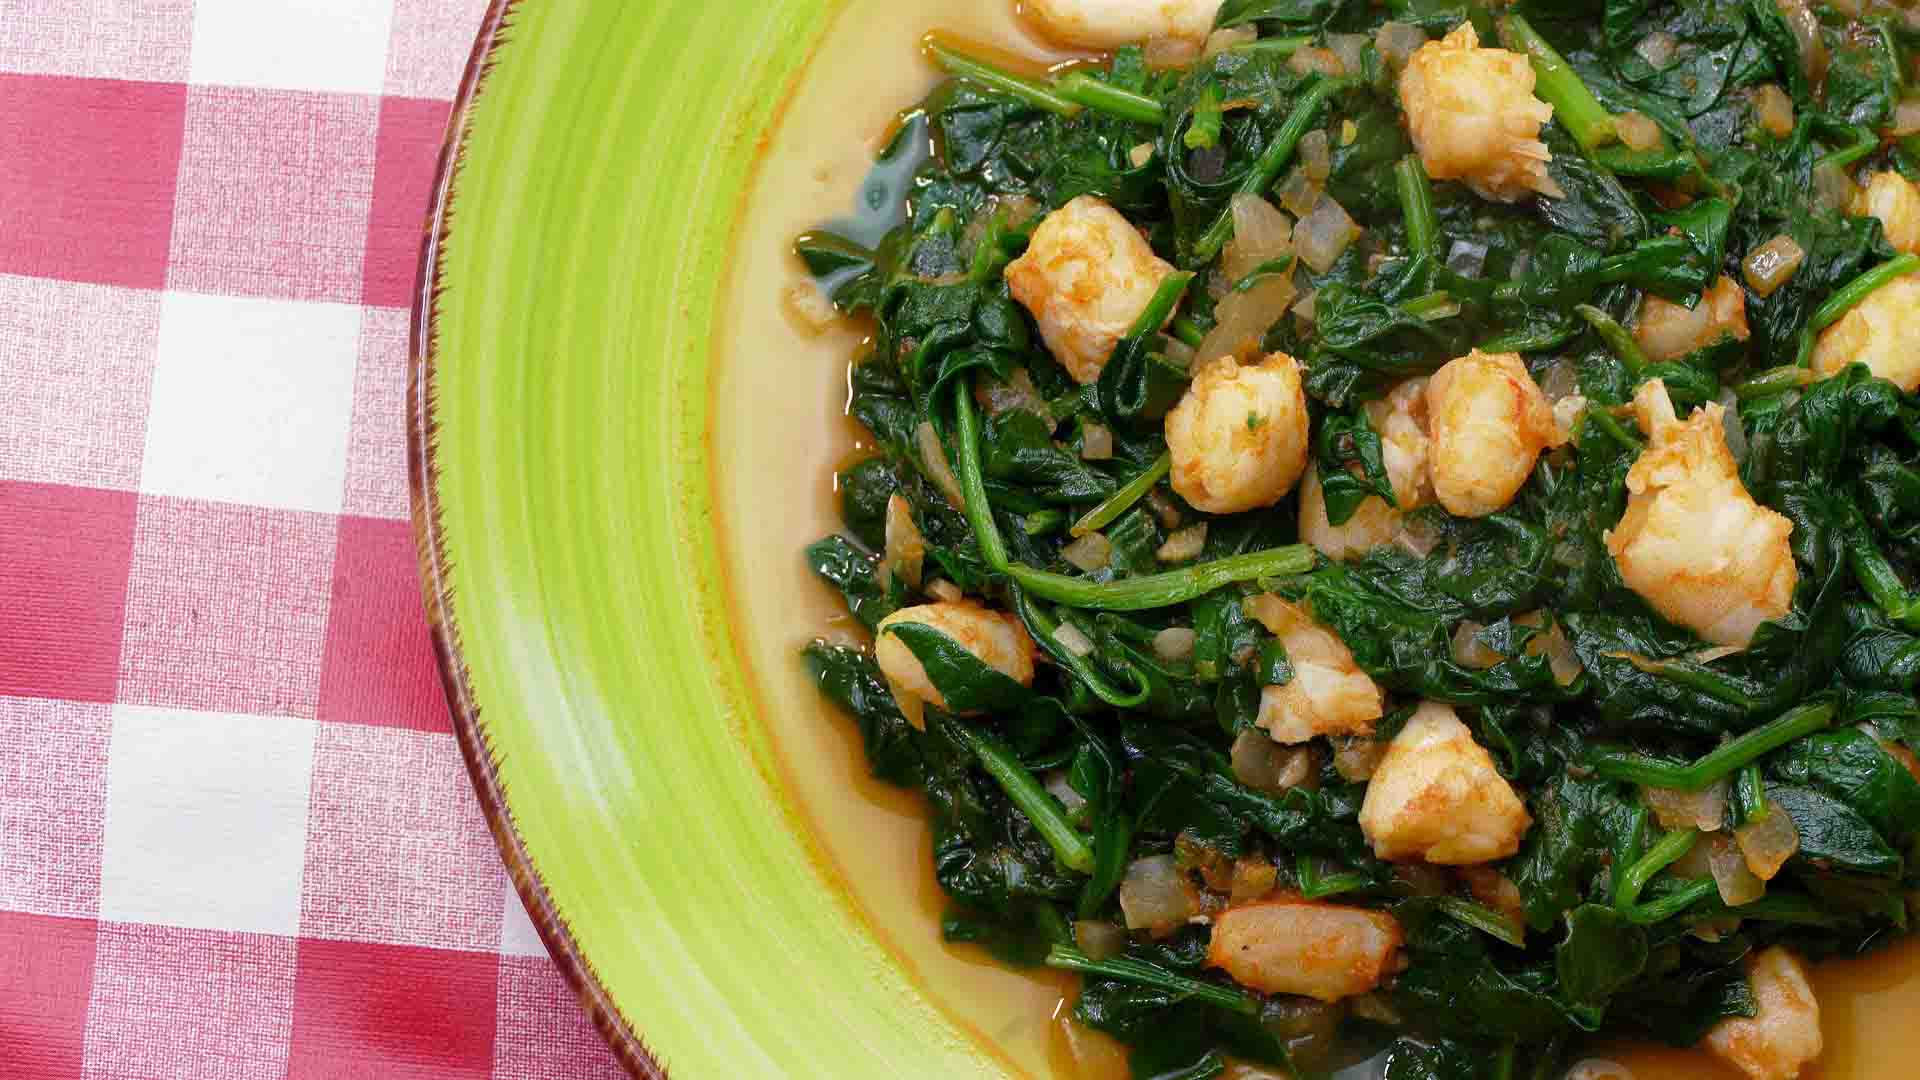 Spinach with prawns